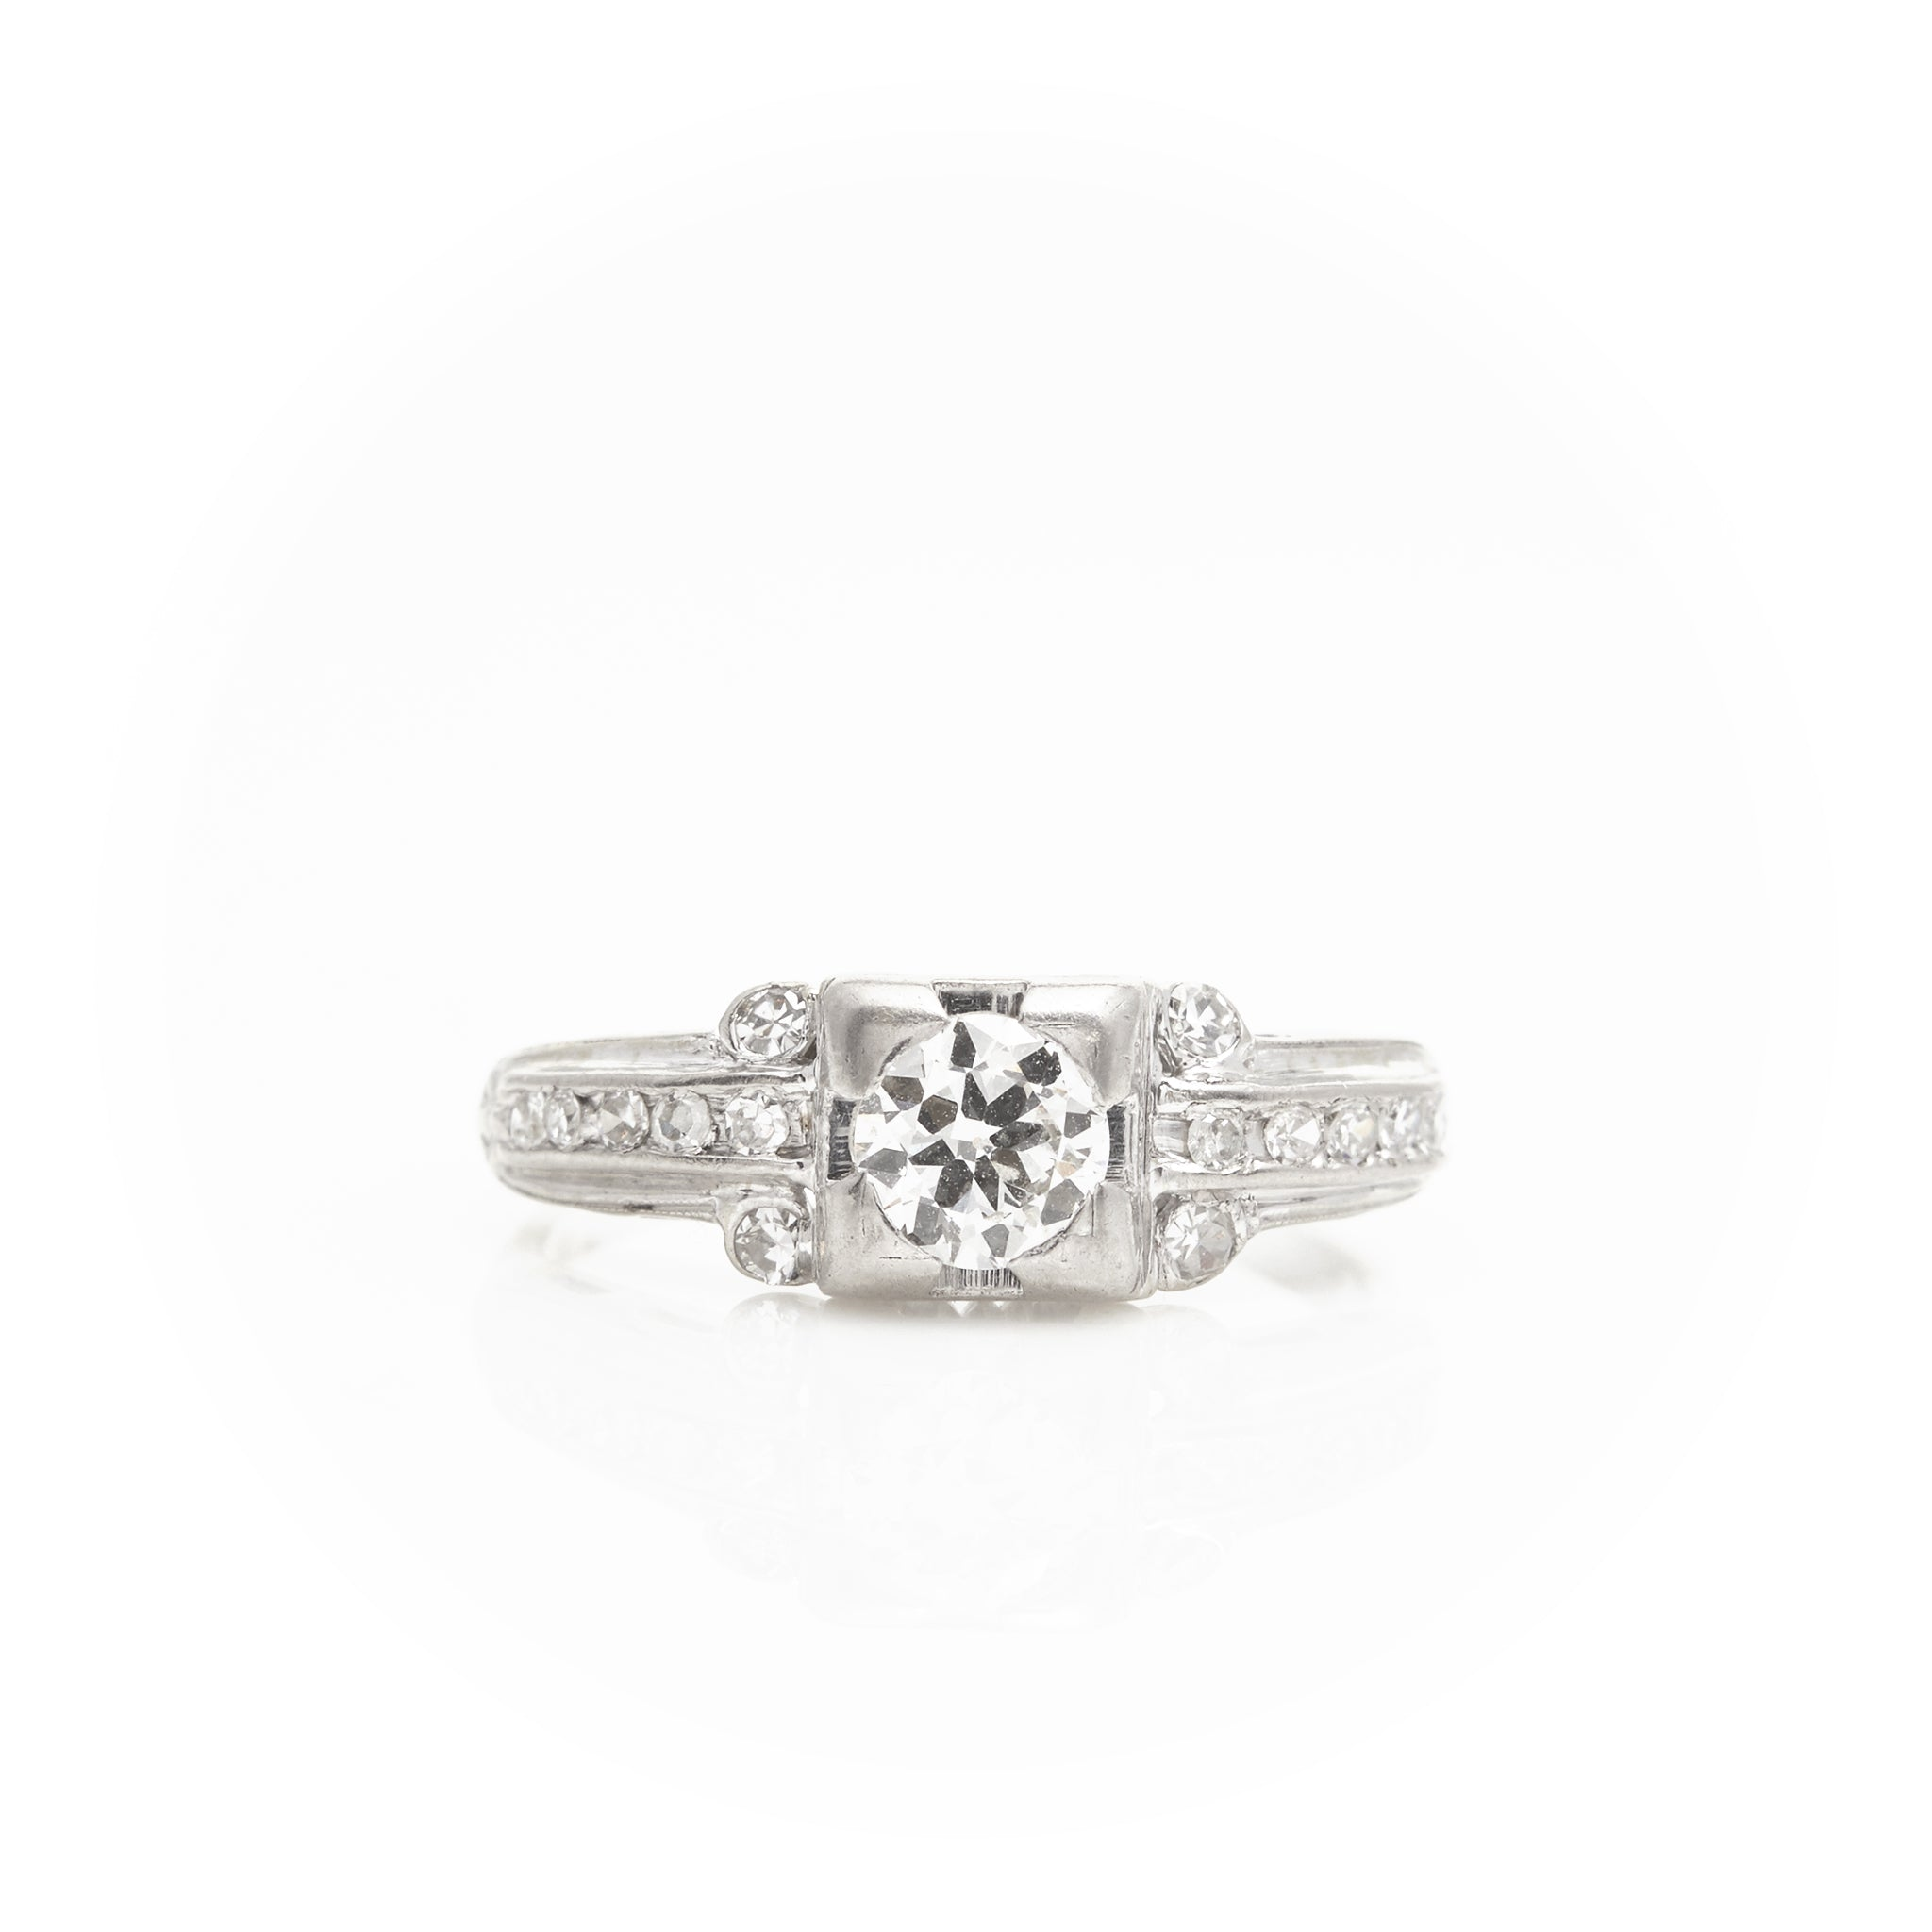 *SOLD* Diamonds in Art Deco Platinum Ring - Sindur